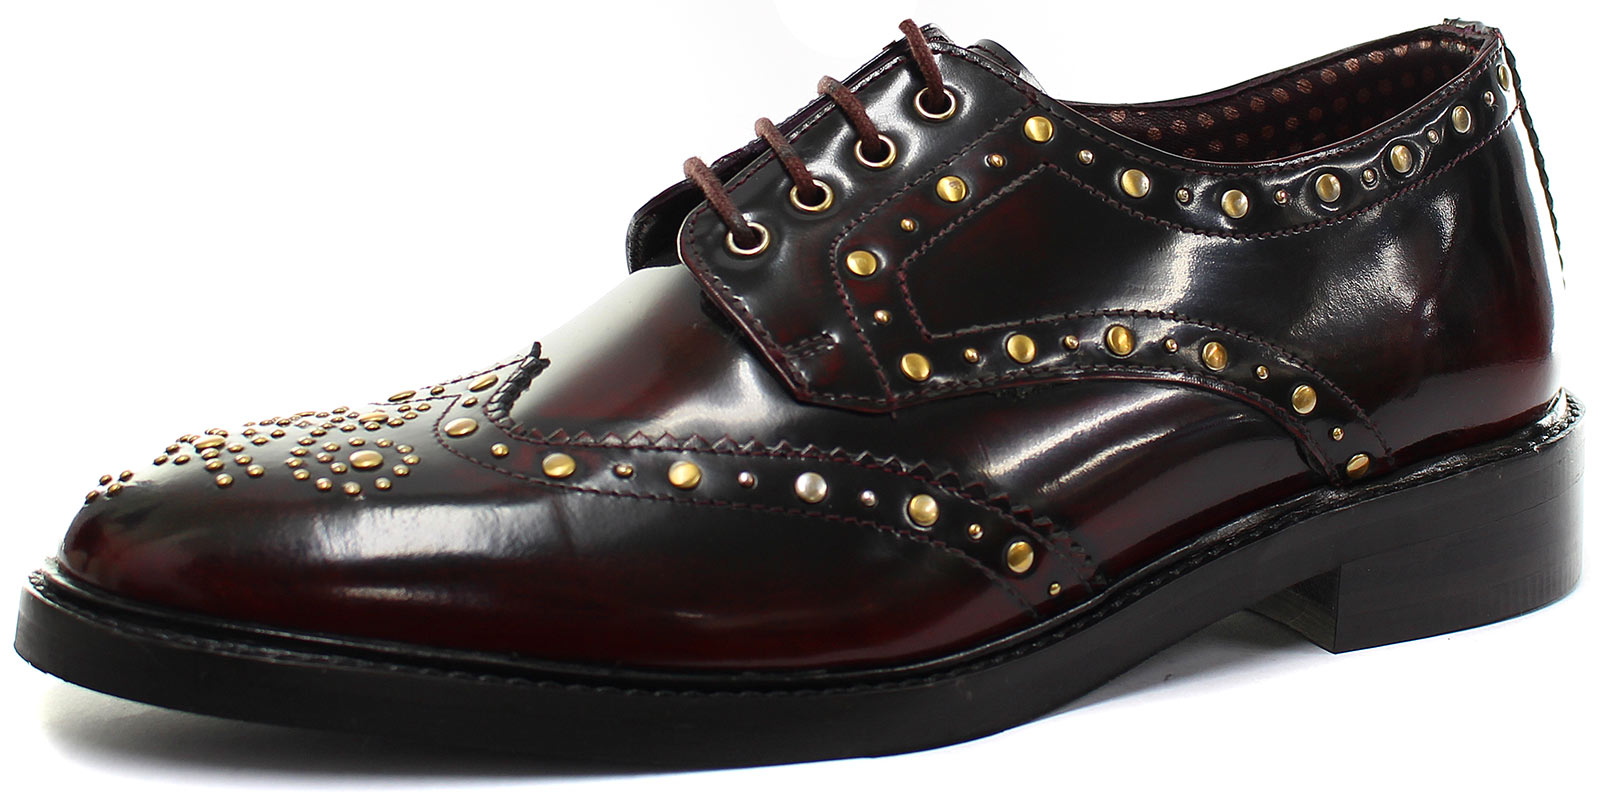 New London Brogues Brut Derby Mens Lace Up Brogue Shoes ALL SIZES AND COLOURS